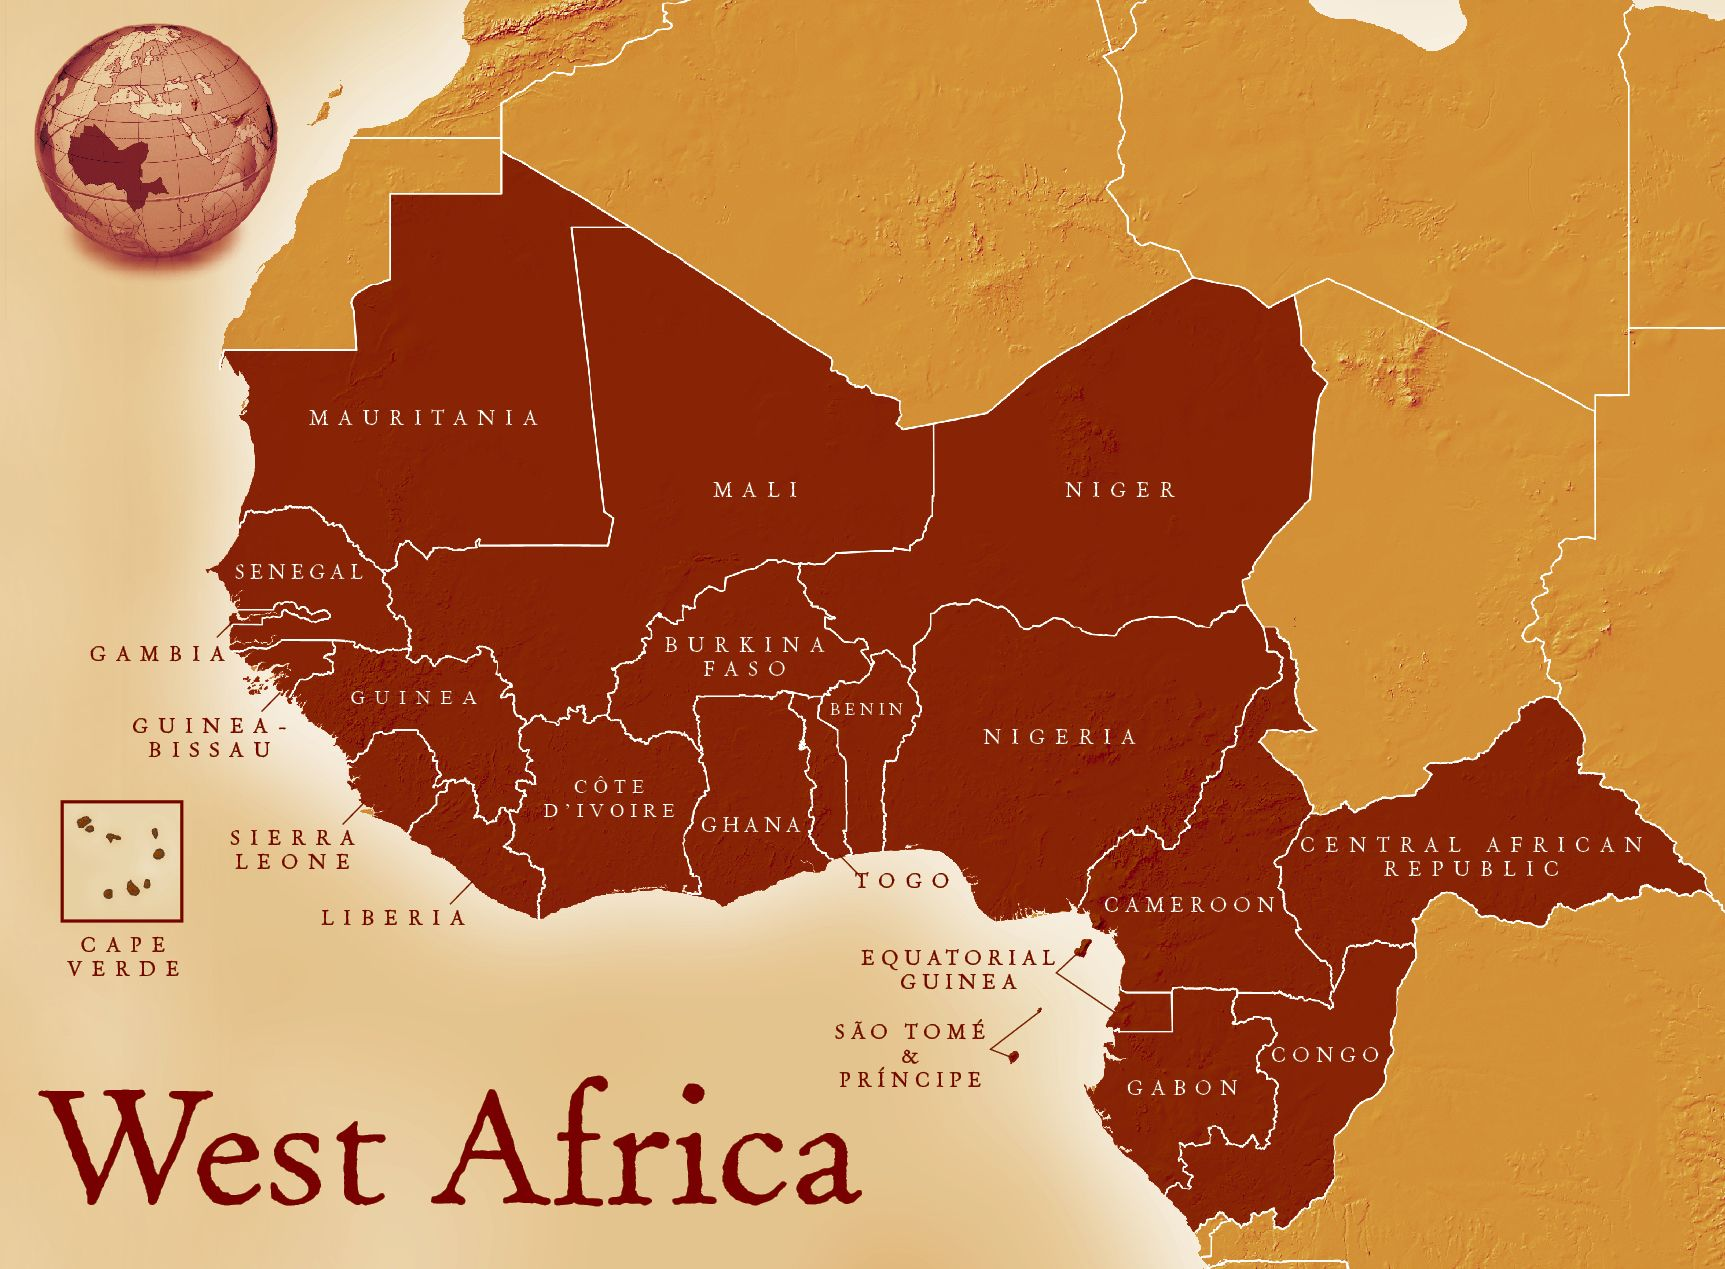 Countries Of West Africa Map.Map Of West Africa West Africa West African Countries Africa